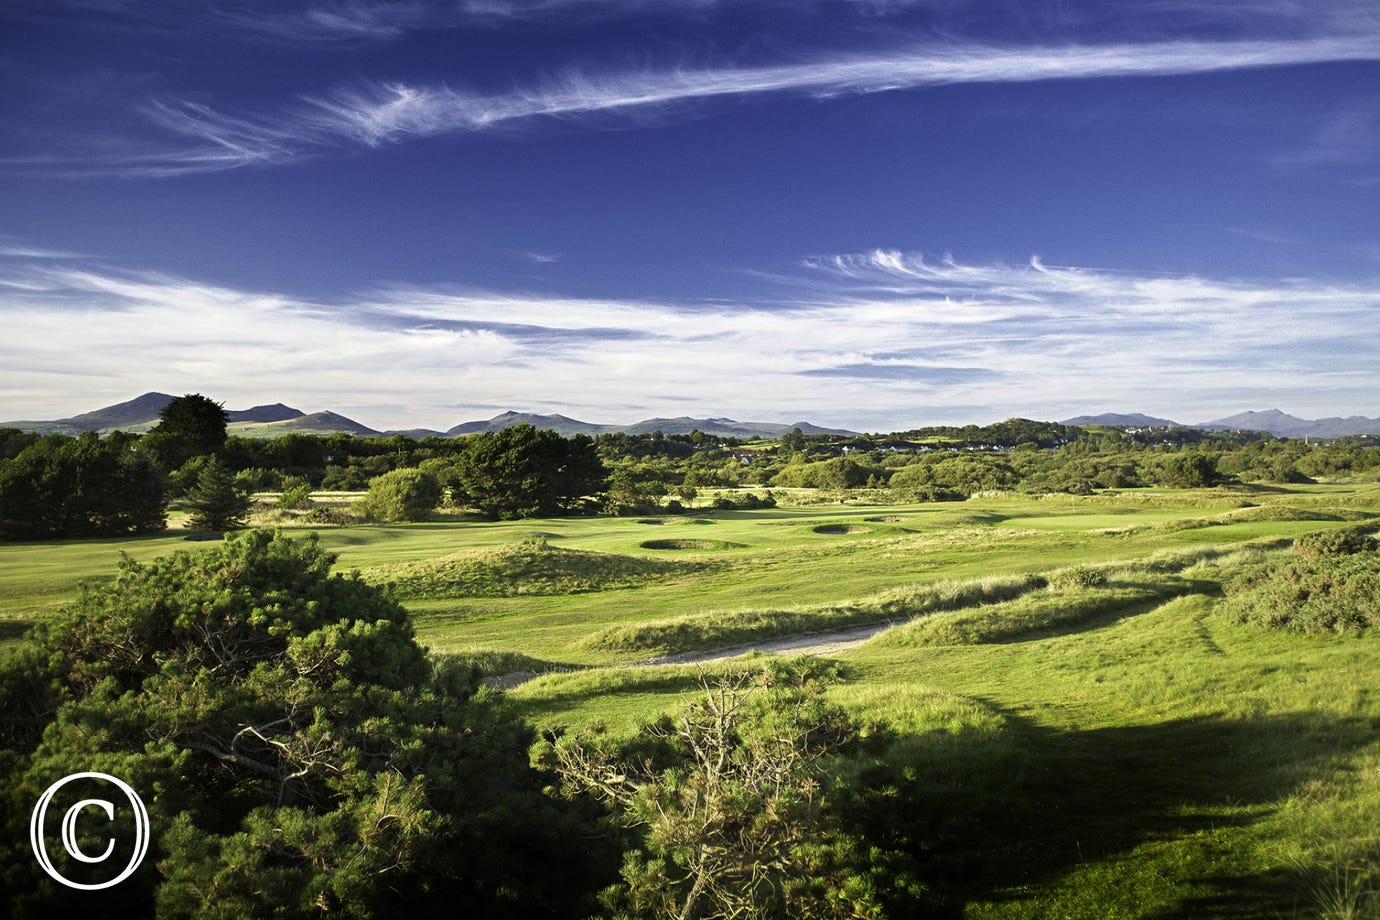 Pwllheli Golf Club (5 miles)